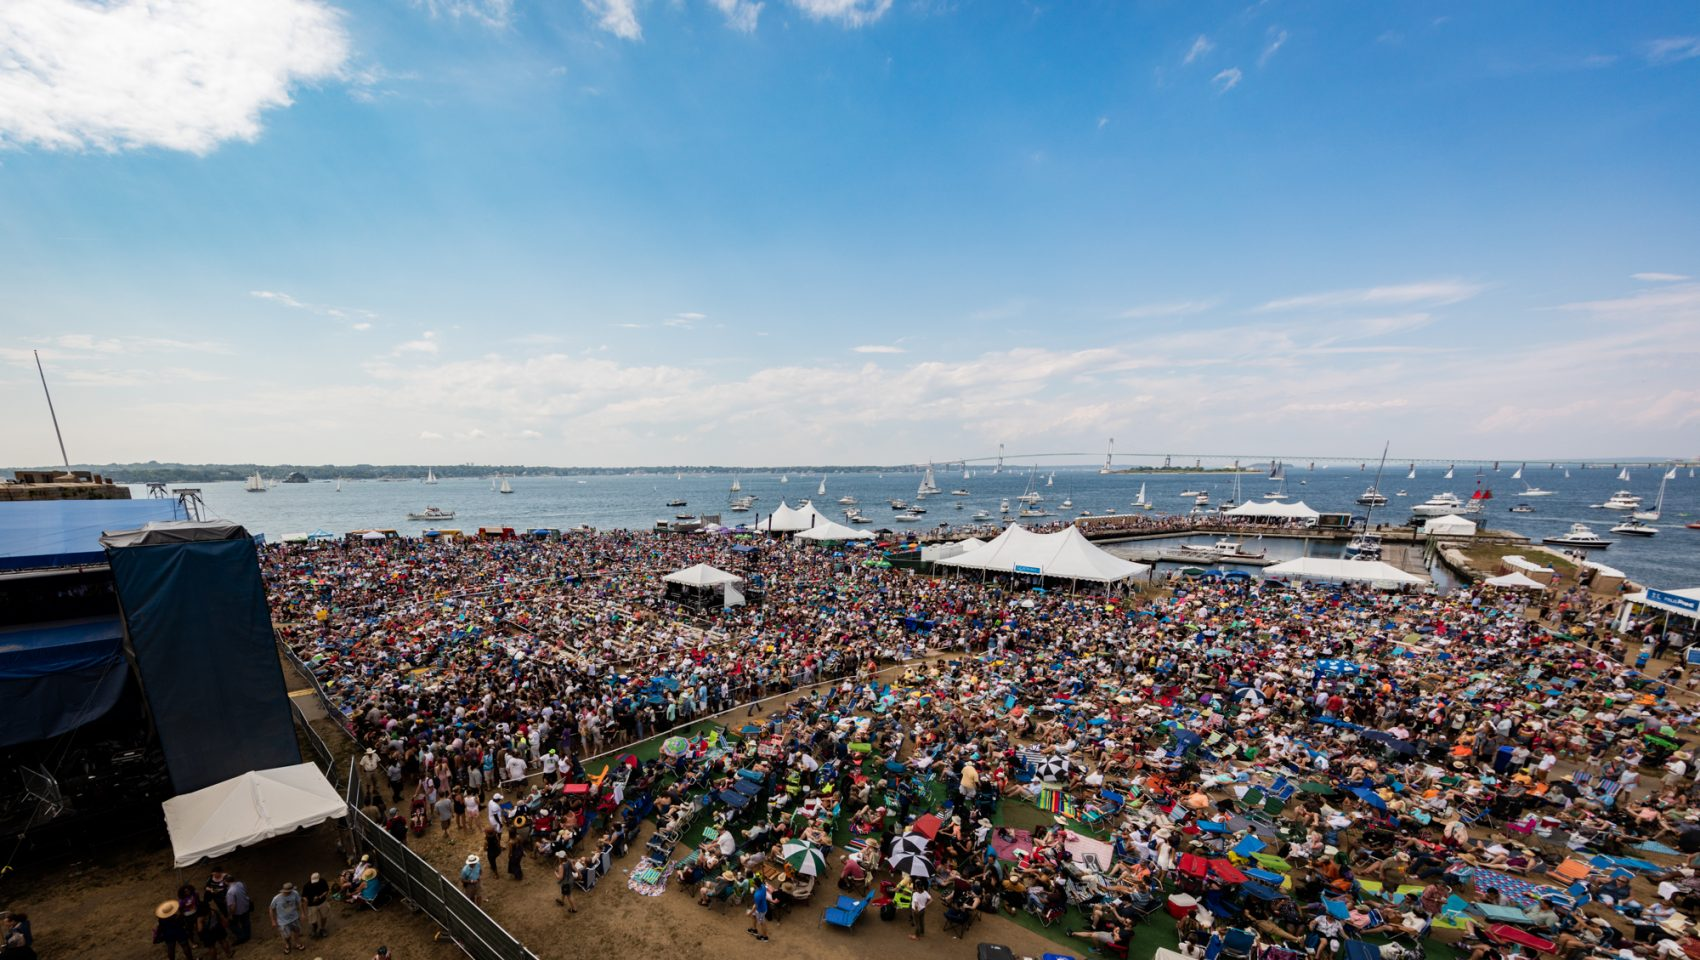 A view of the crowd at the Newport Jazz Festival in 2016. (Courtesy Douglas Mason)